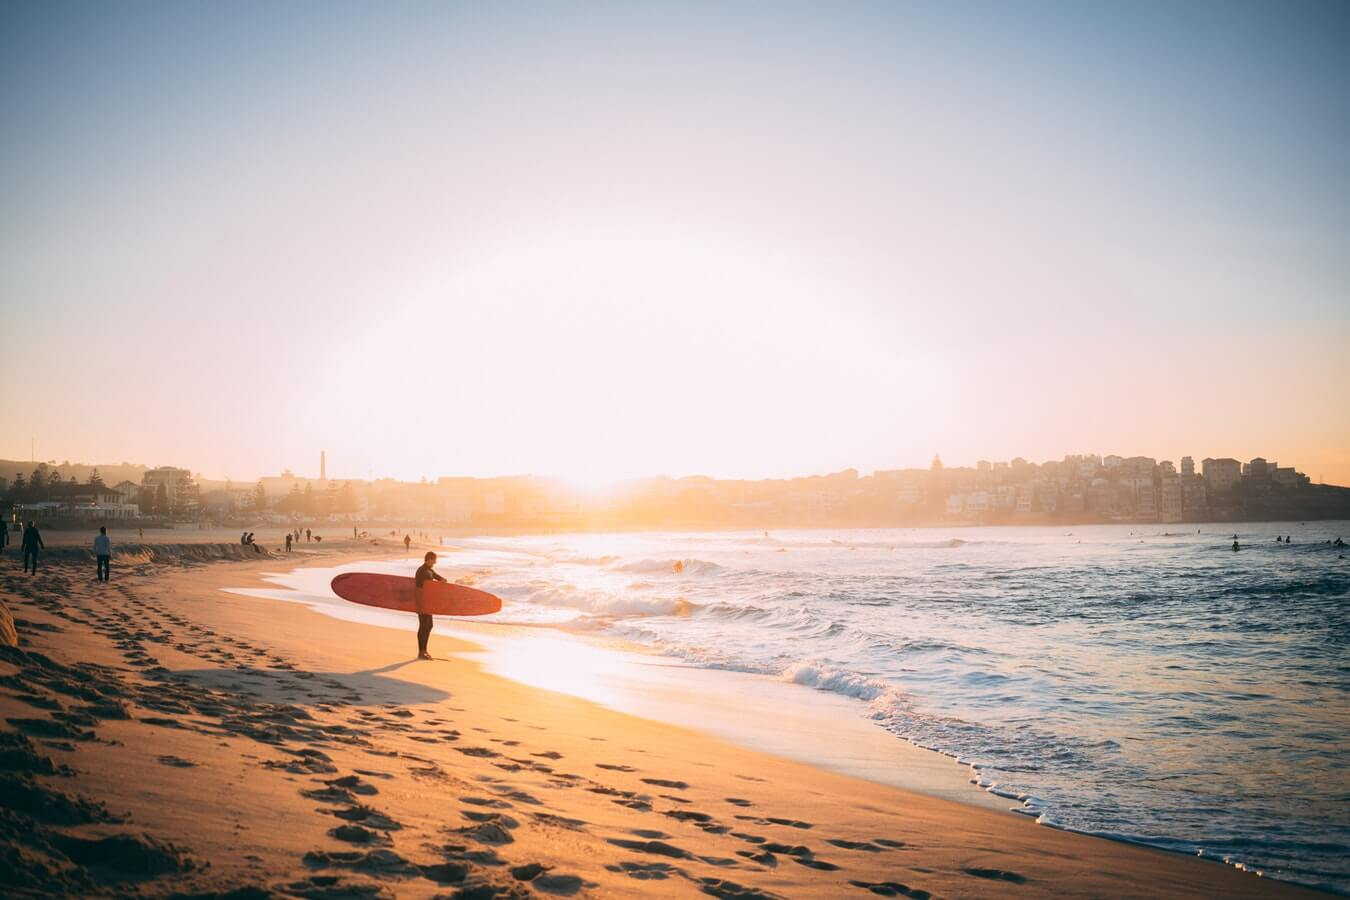 Surfer on beach with longboard. Vacation houses Australia